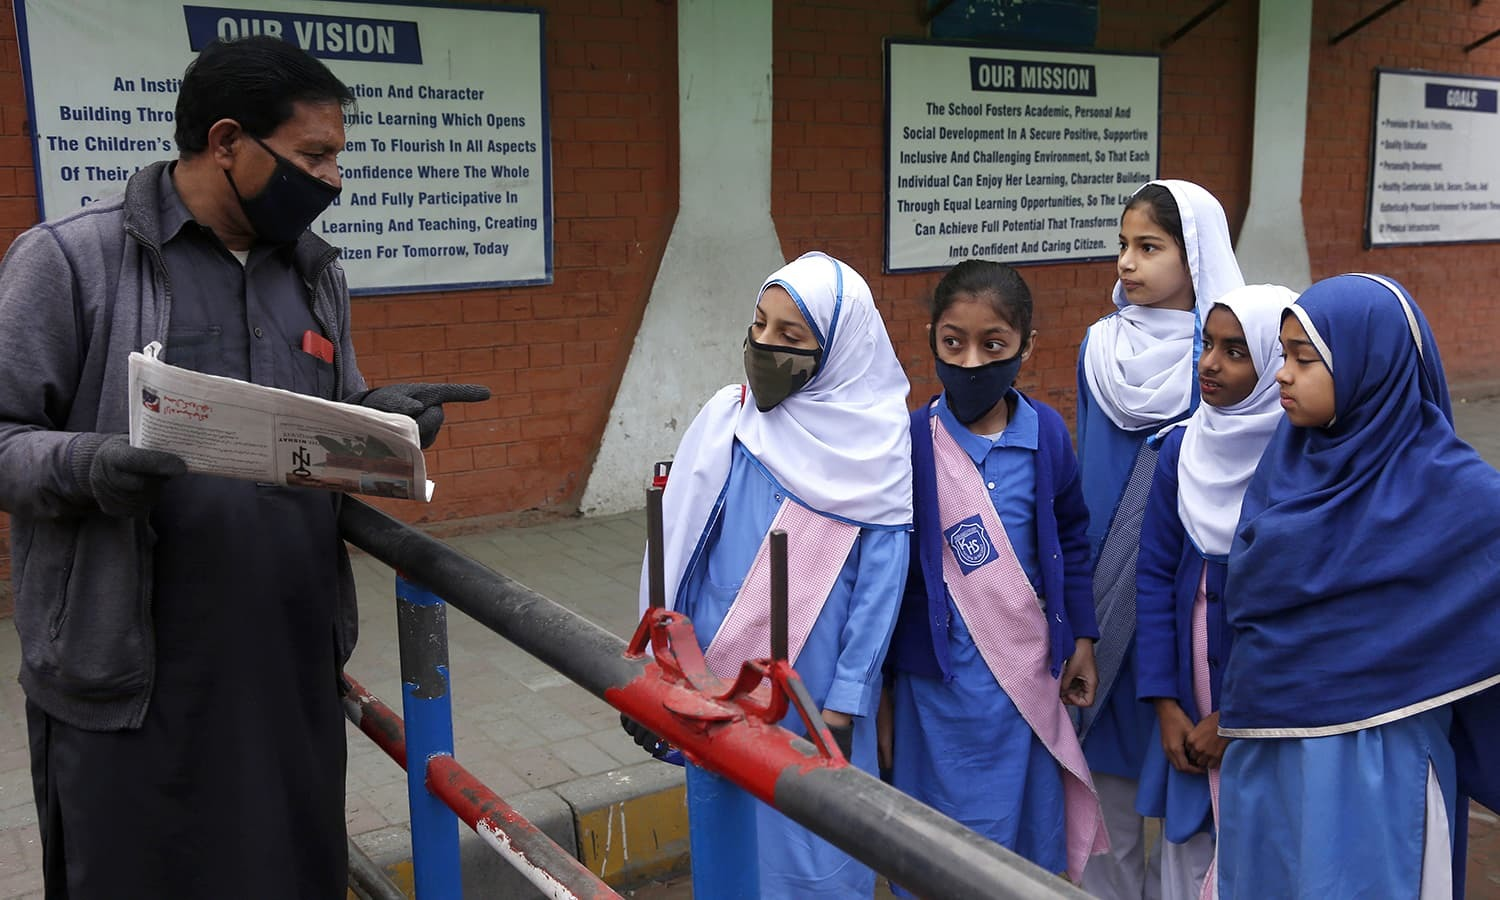 A security guard tells students that their school is closed by authorities to control possible spread of coronavirus, in Lahore, Pakistan, Saturday, March 14, 2020. For most people, the new coronavirus causes only mild or moderate symptoms. For some it can cause more severe illness. (AP Photo/K.M. Chaudary) — Copyright 2020 The Associated Press. All rights reserved.